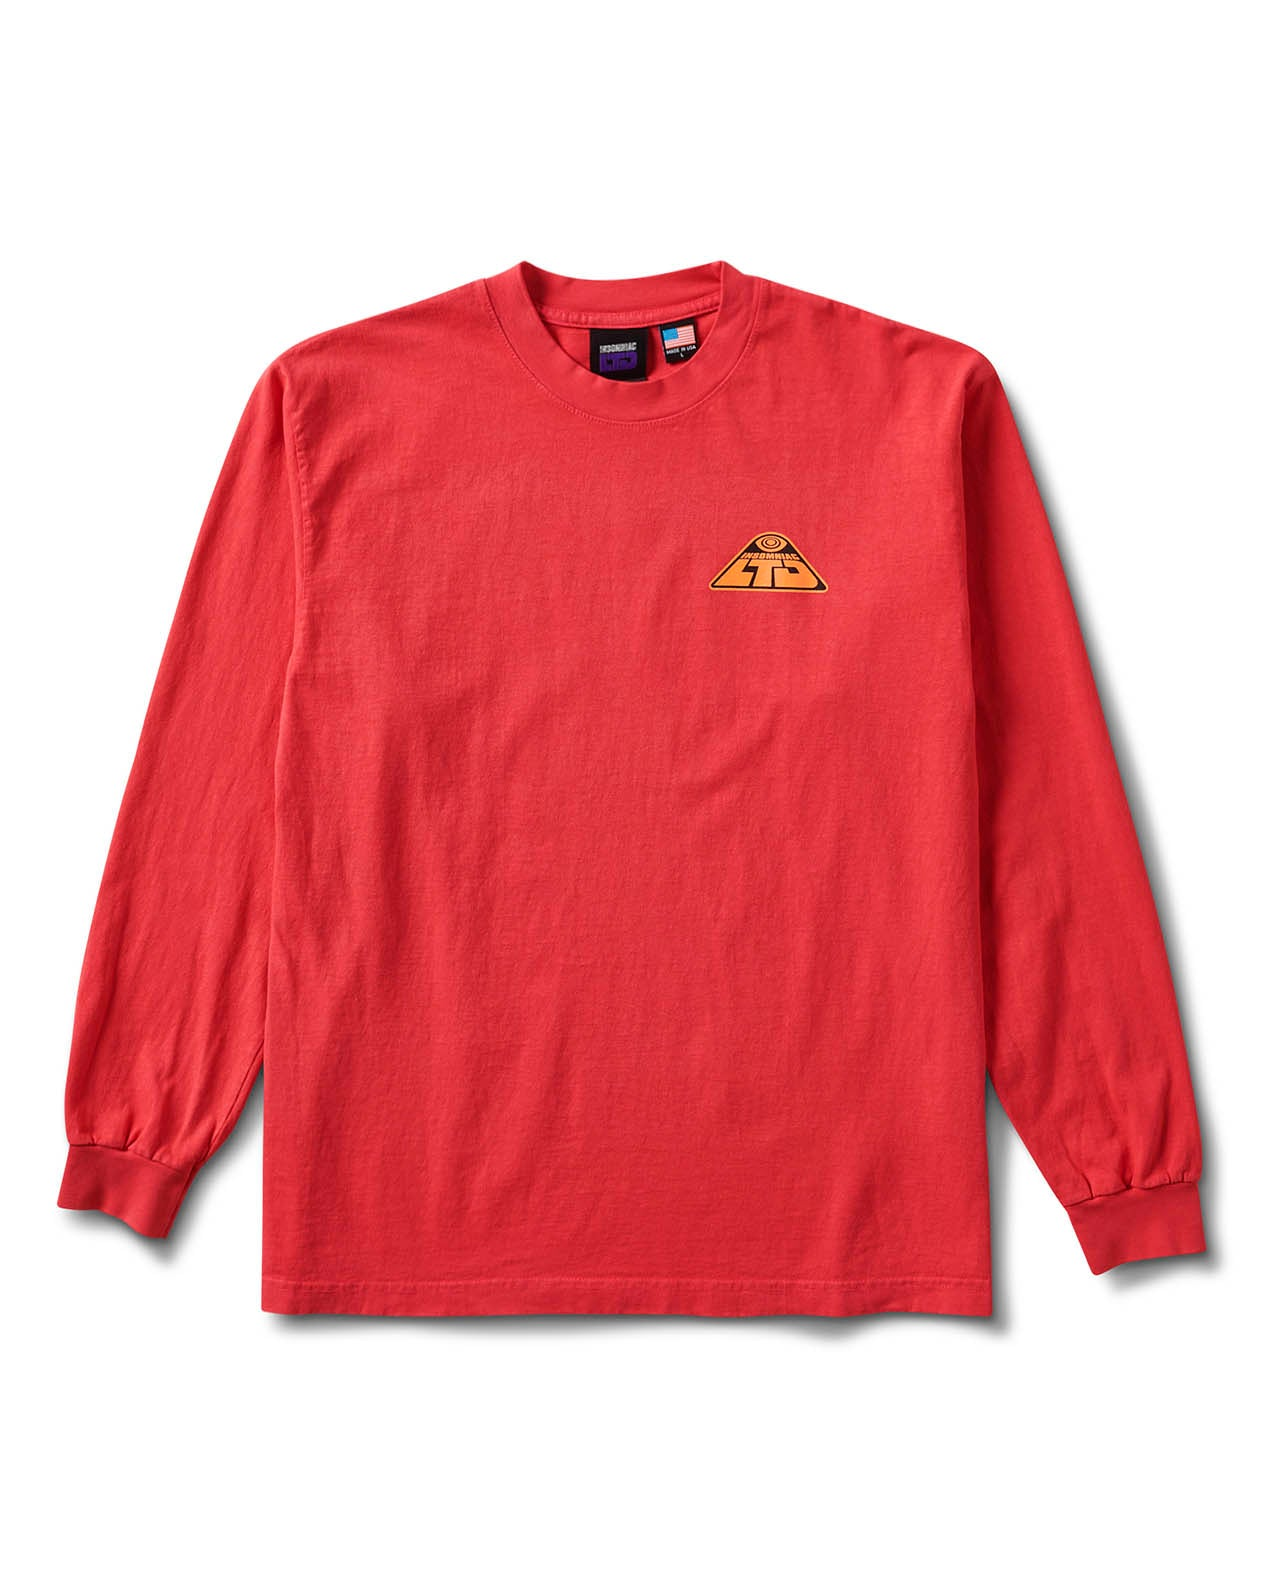 Freebasin L/S Tee Pink